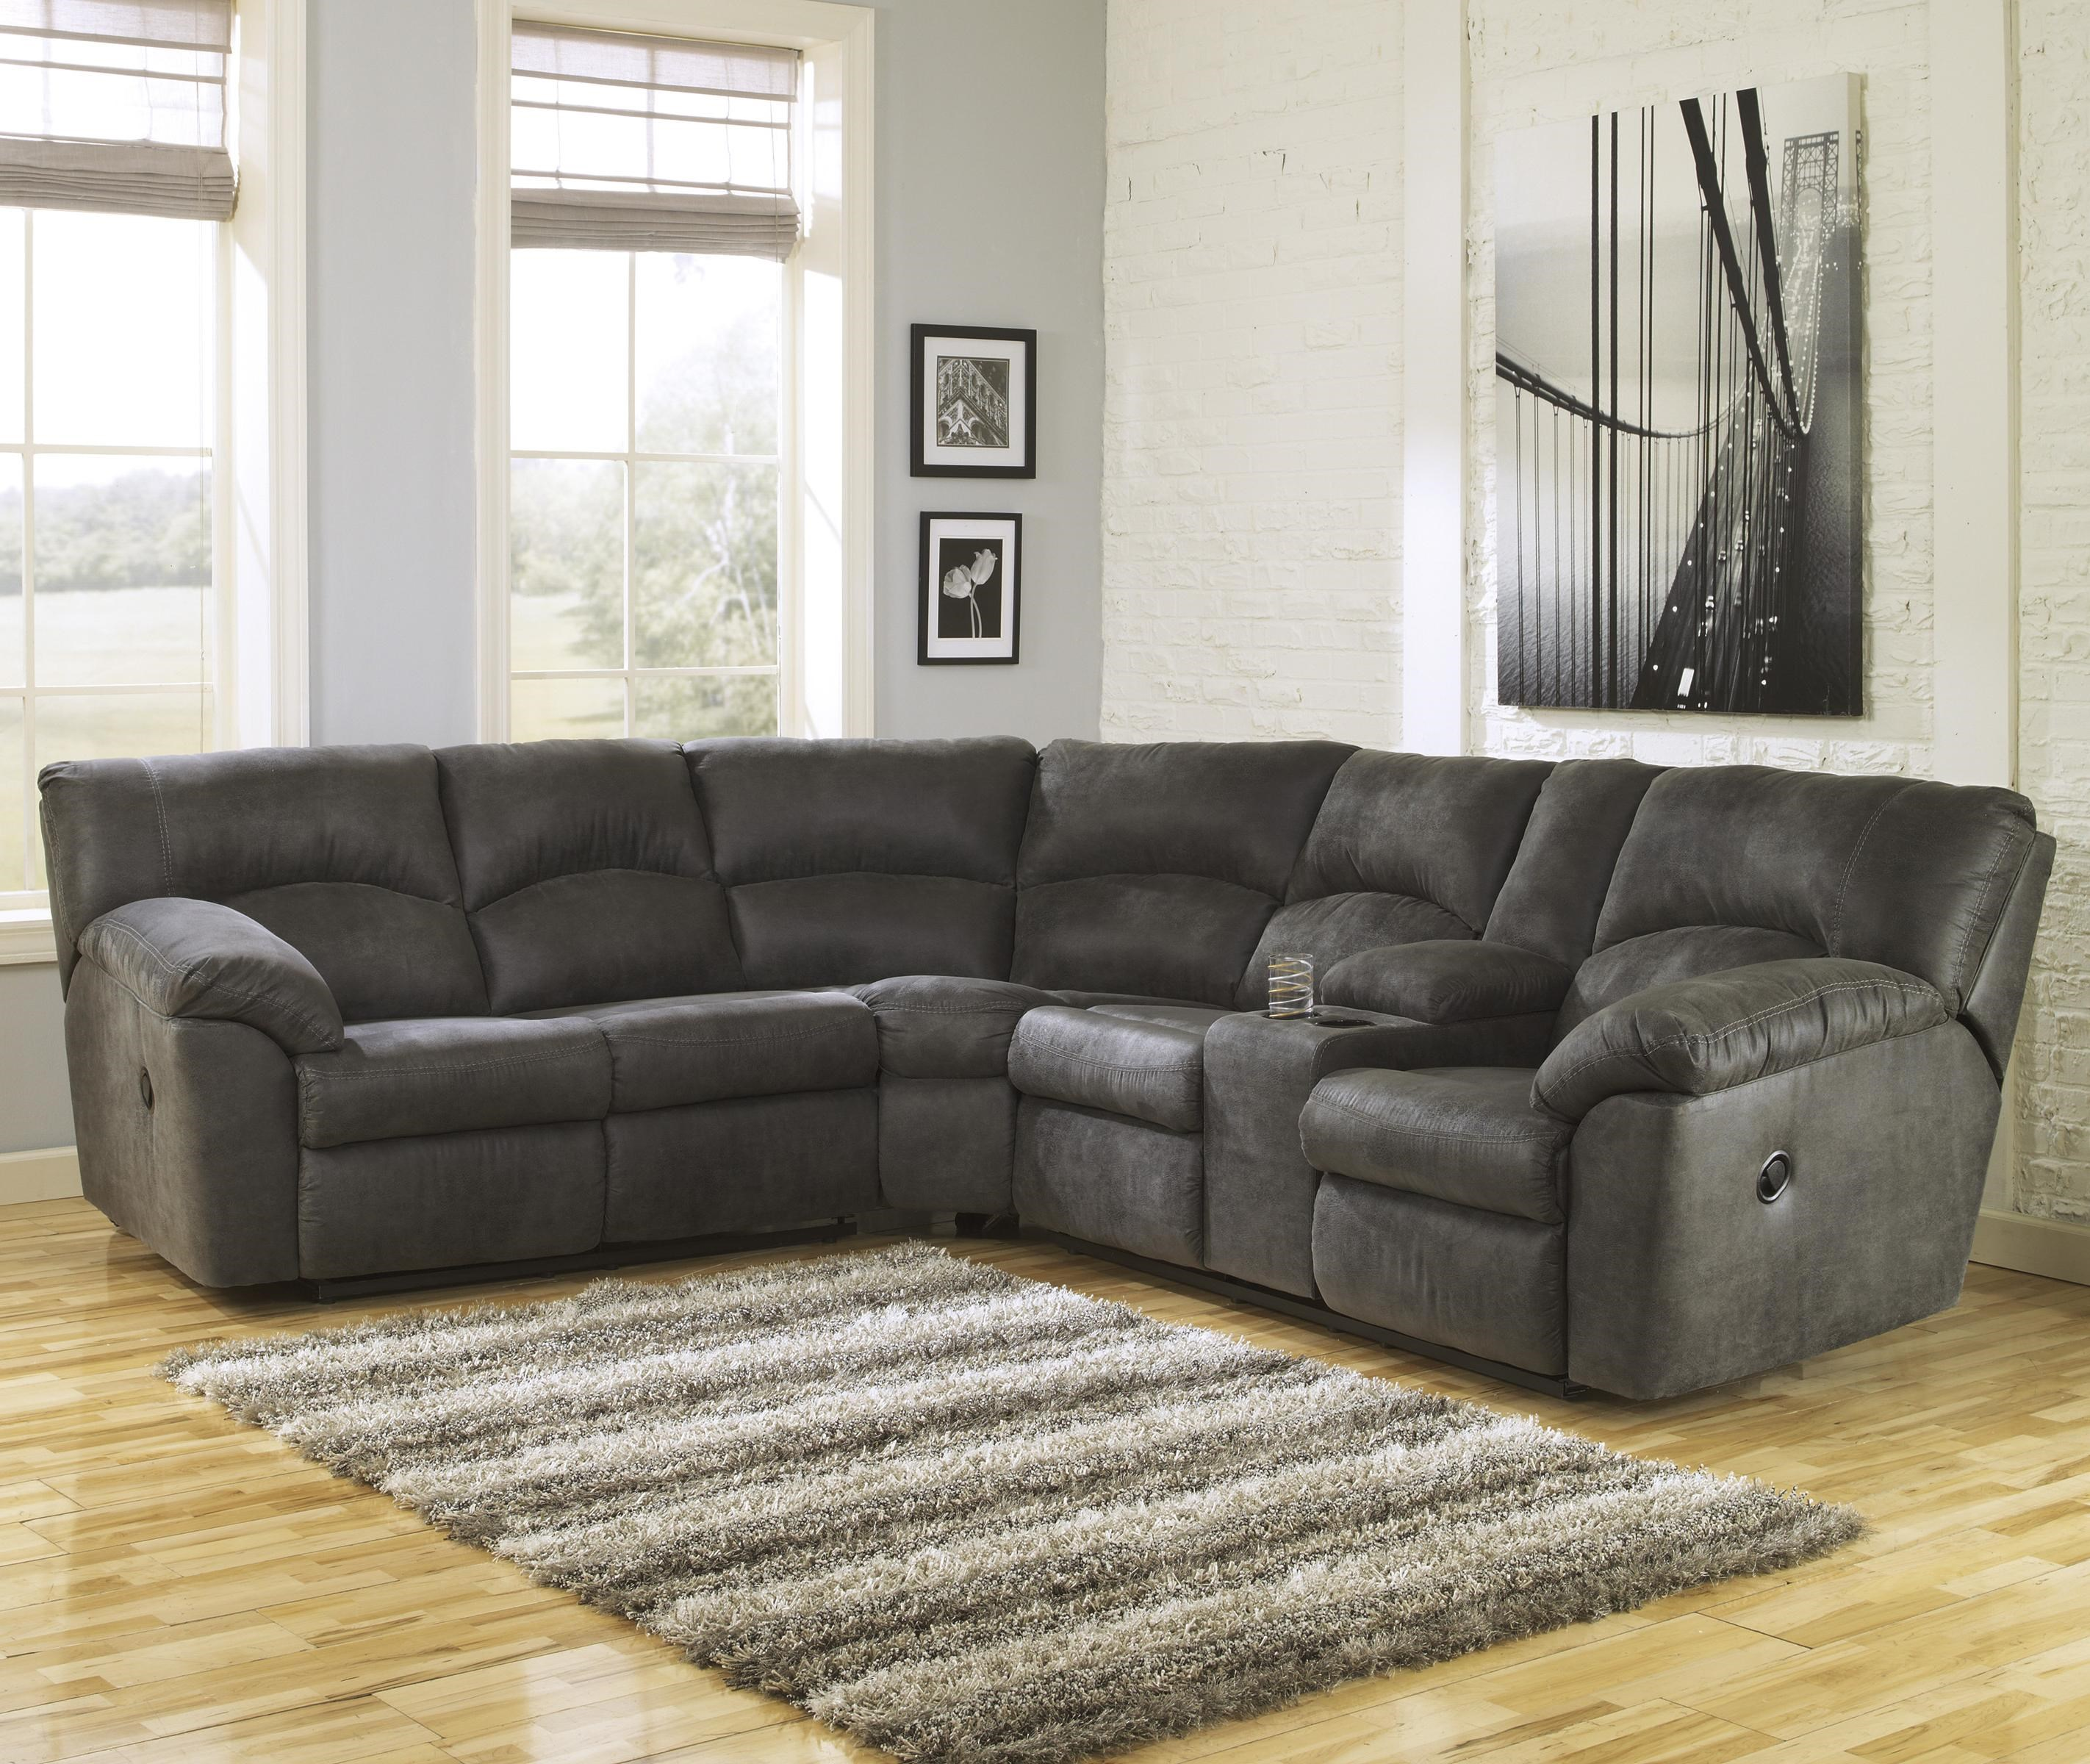 signature design by ashley jessa place sectional sofa pewter fabric